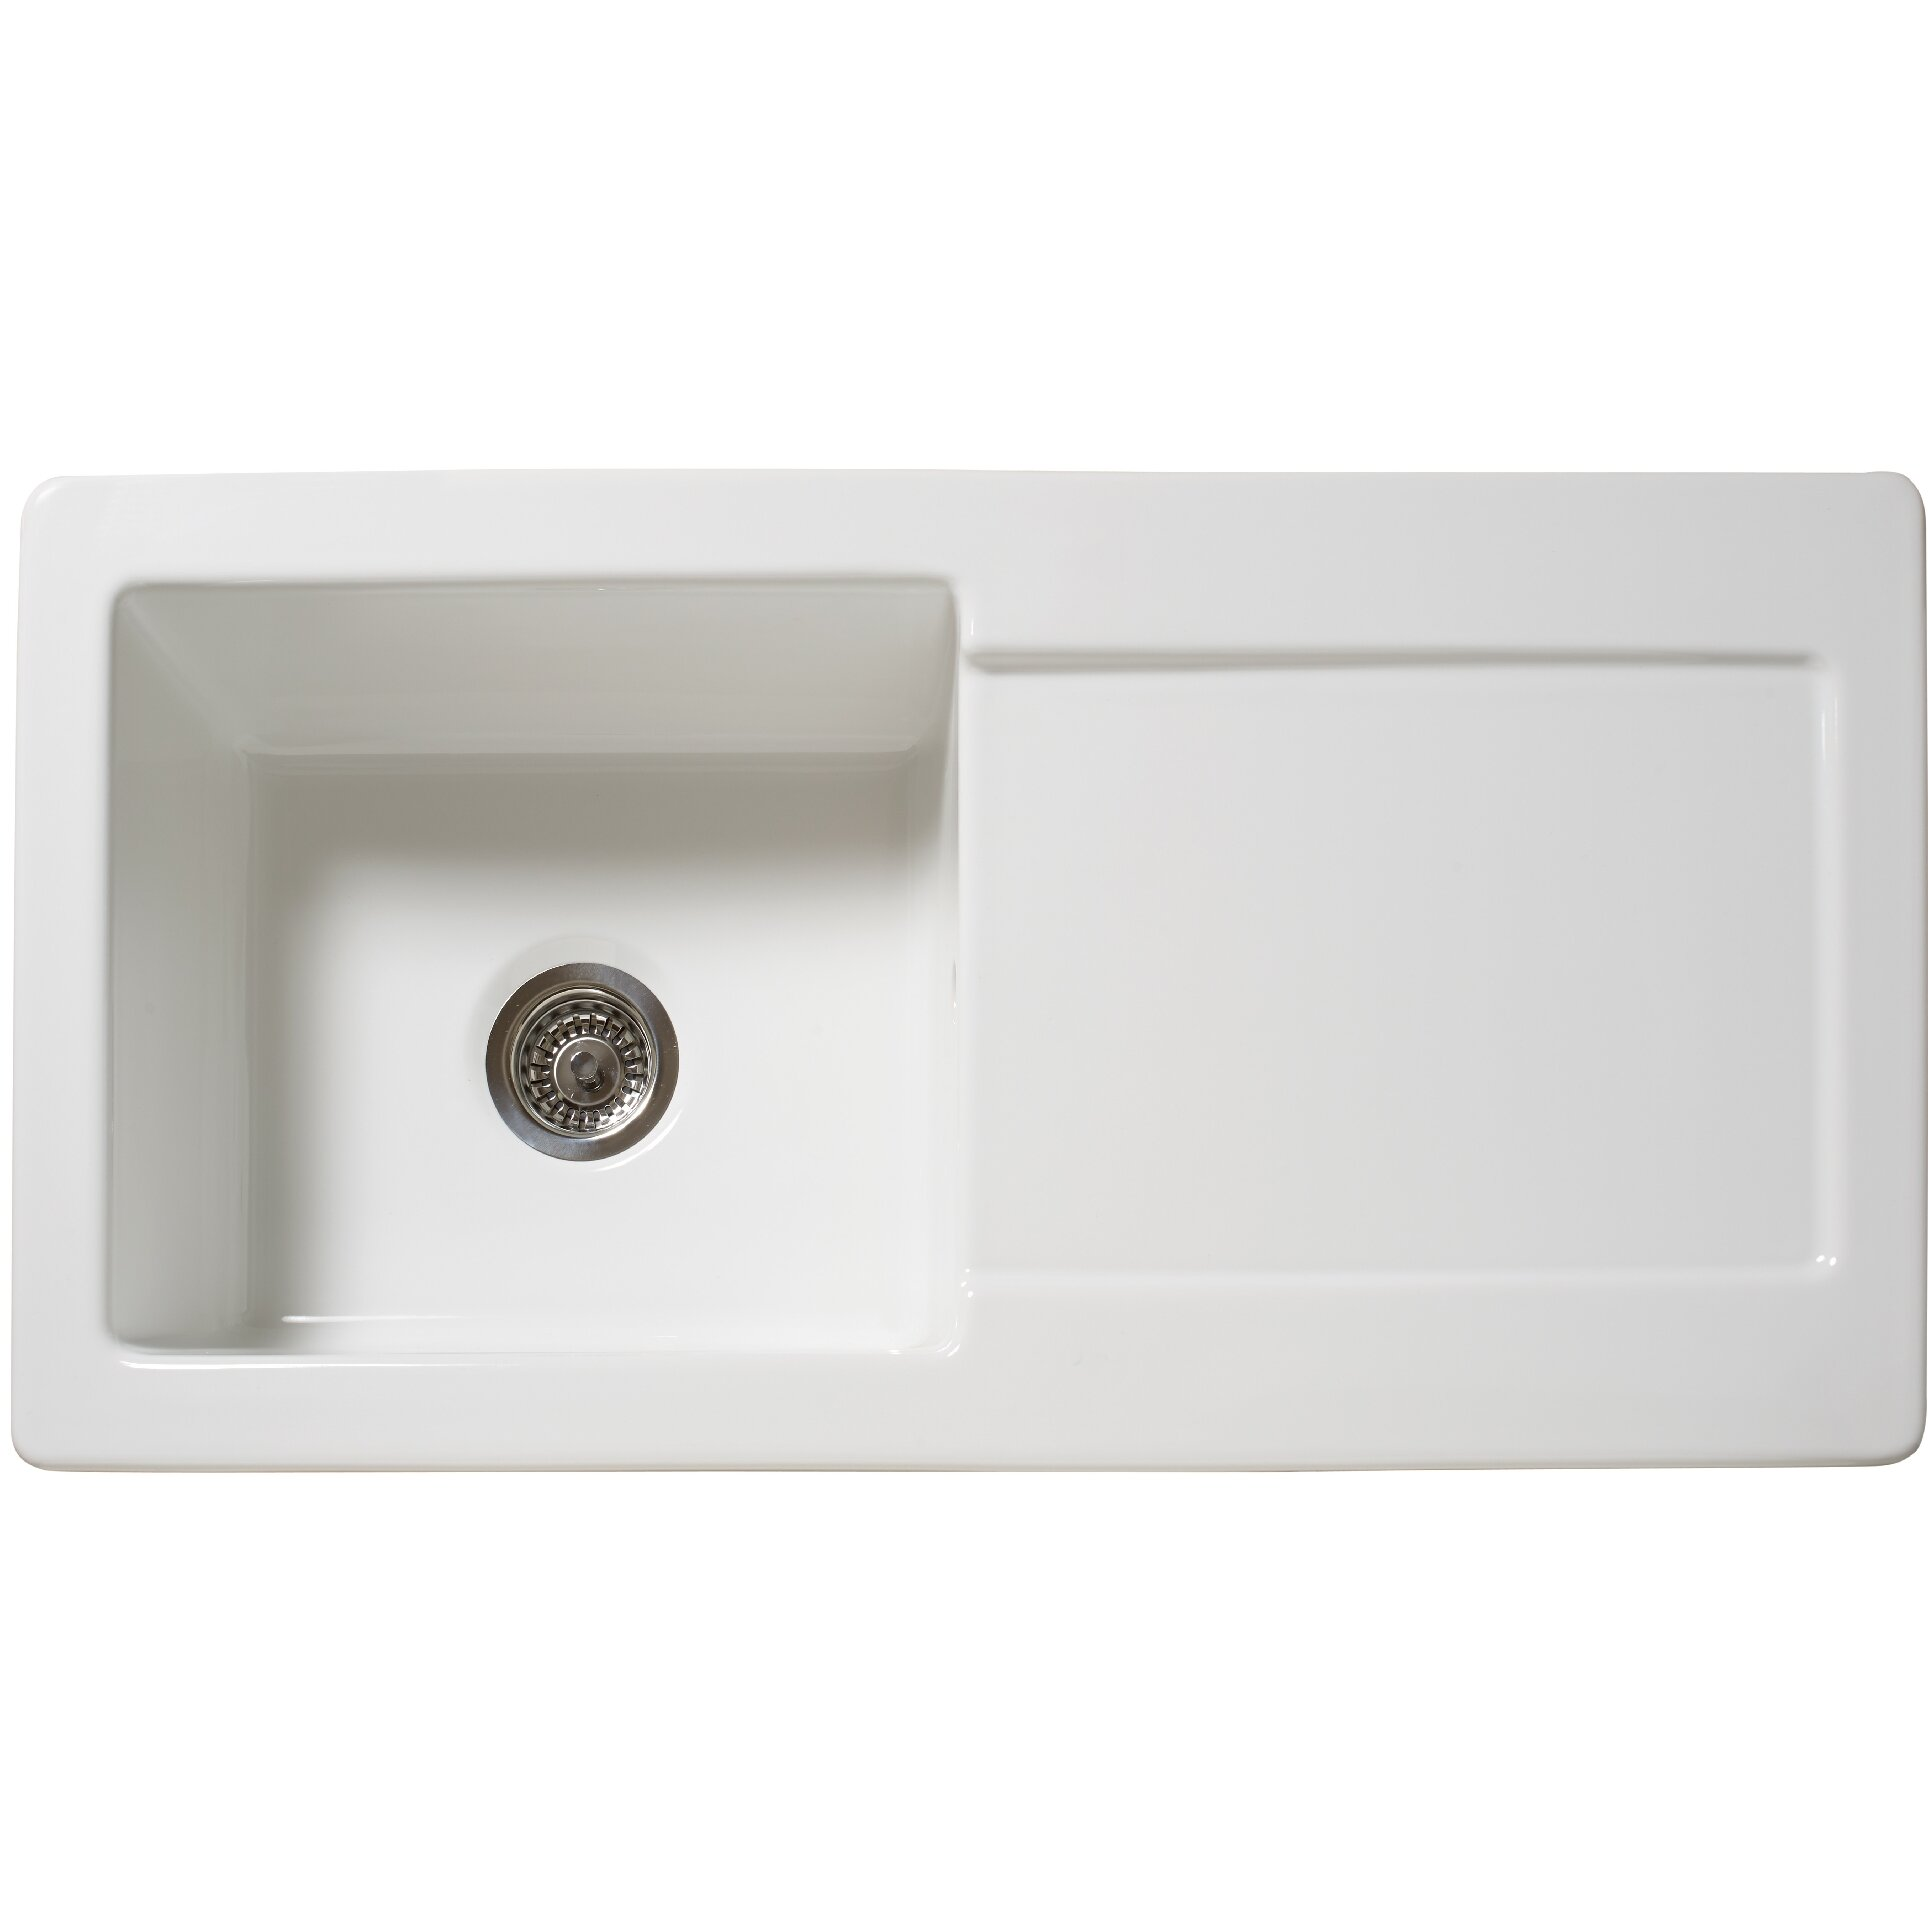 100cm x 50cm inset kitchen sink - Kitchen Sink Uk